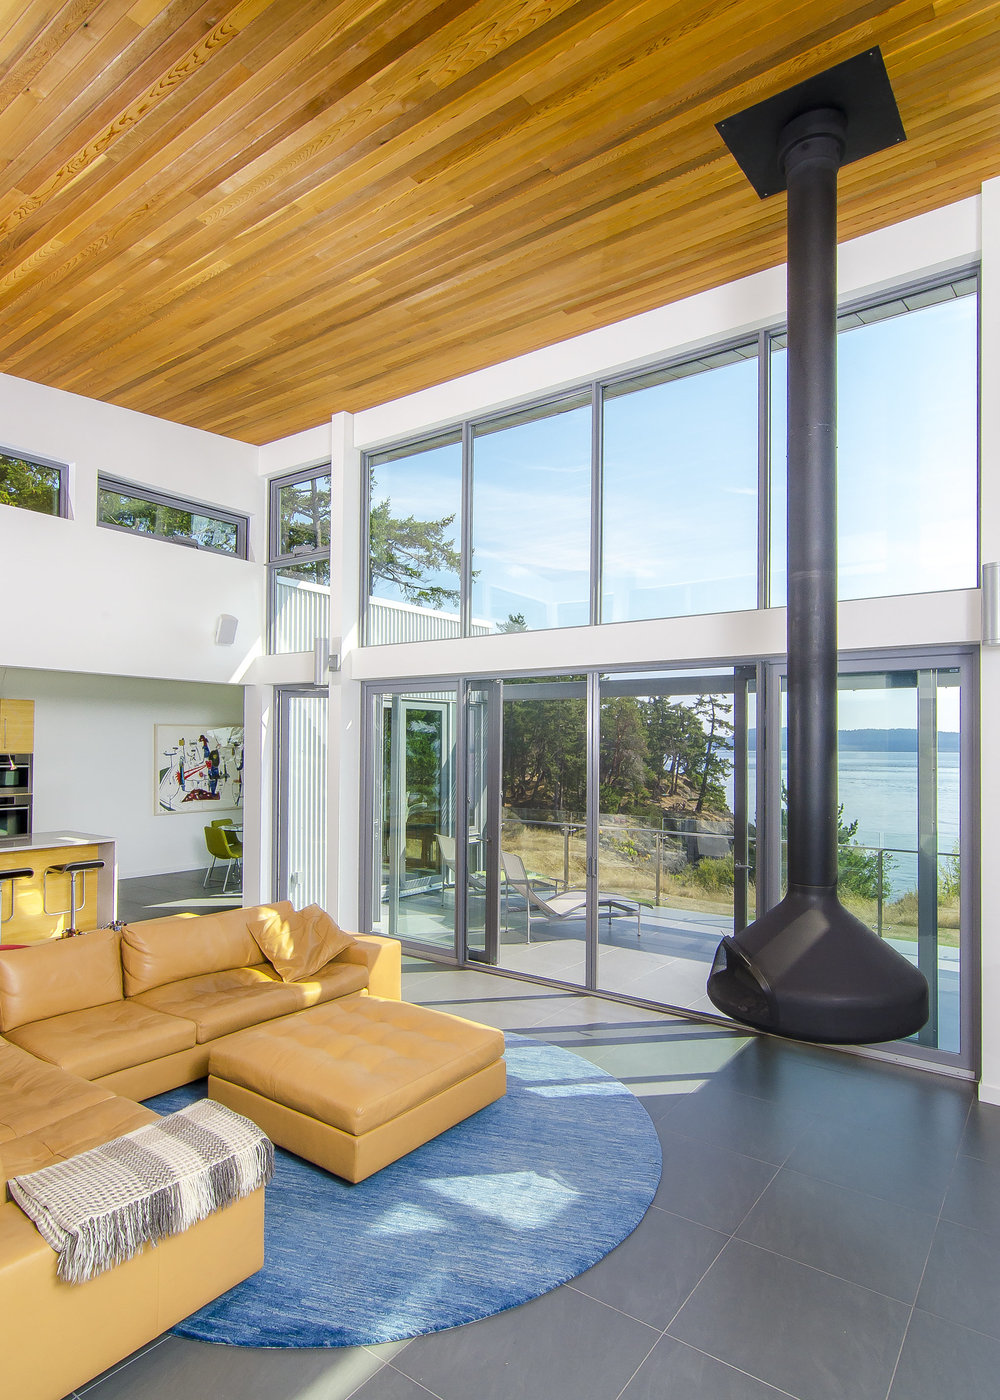 Gulf Island Private Residence architectural home interior